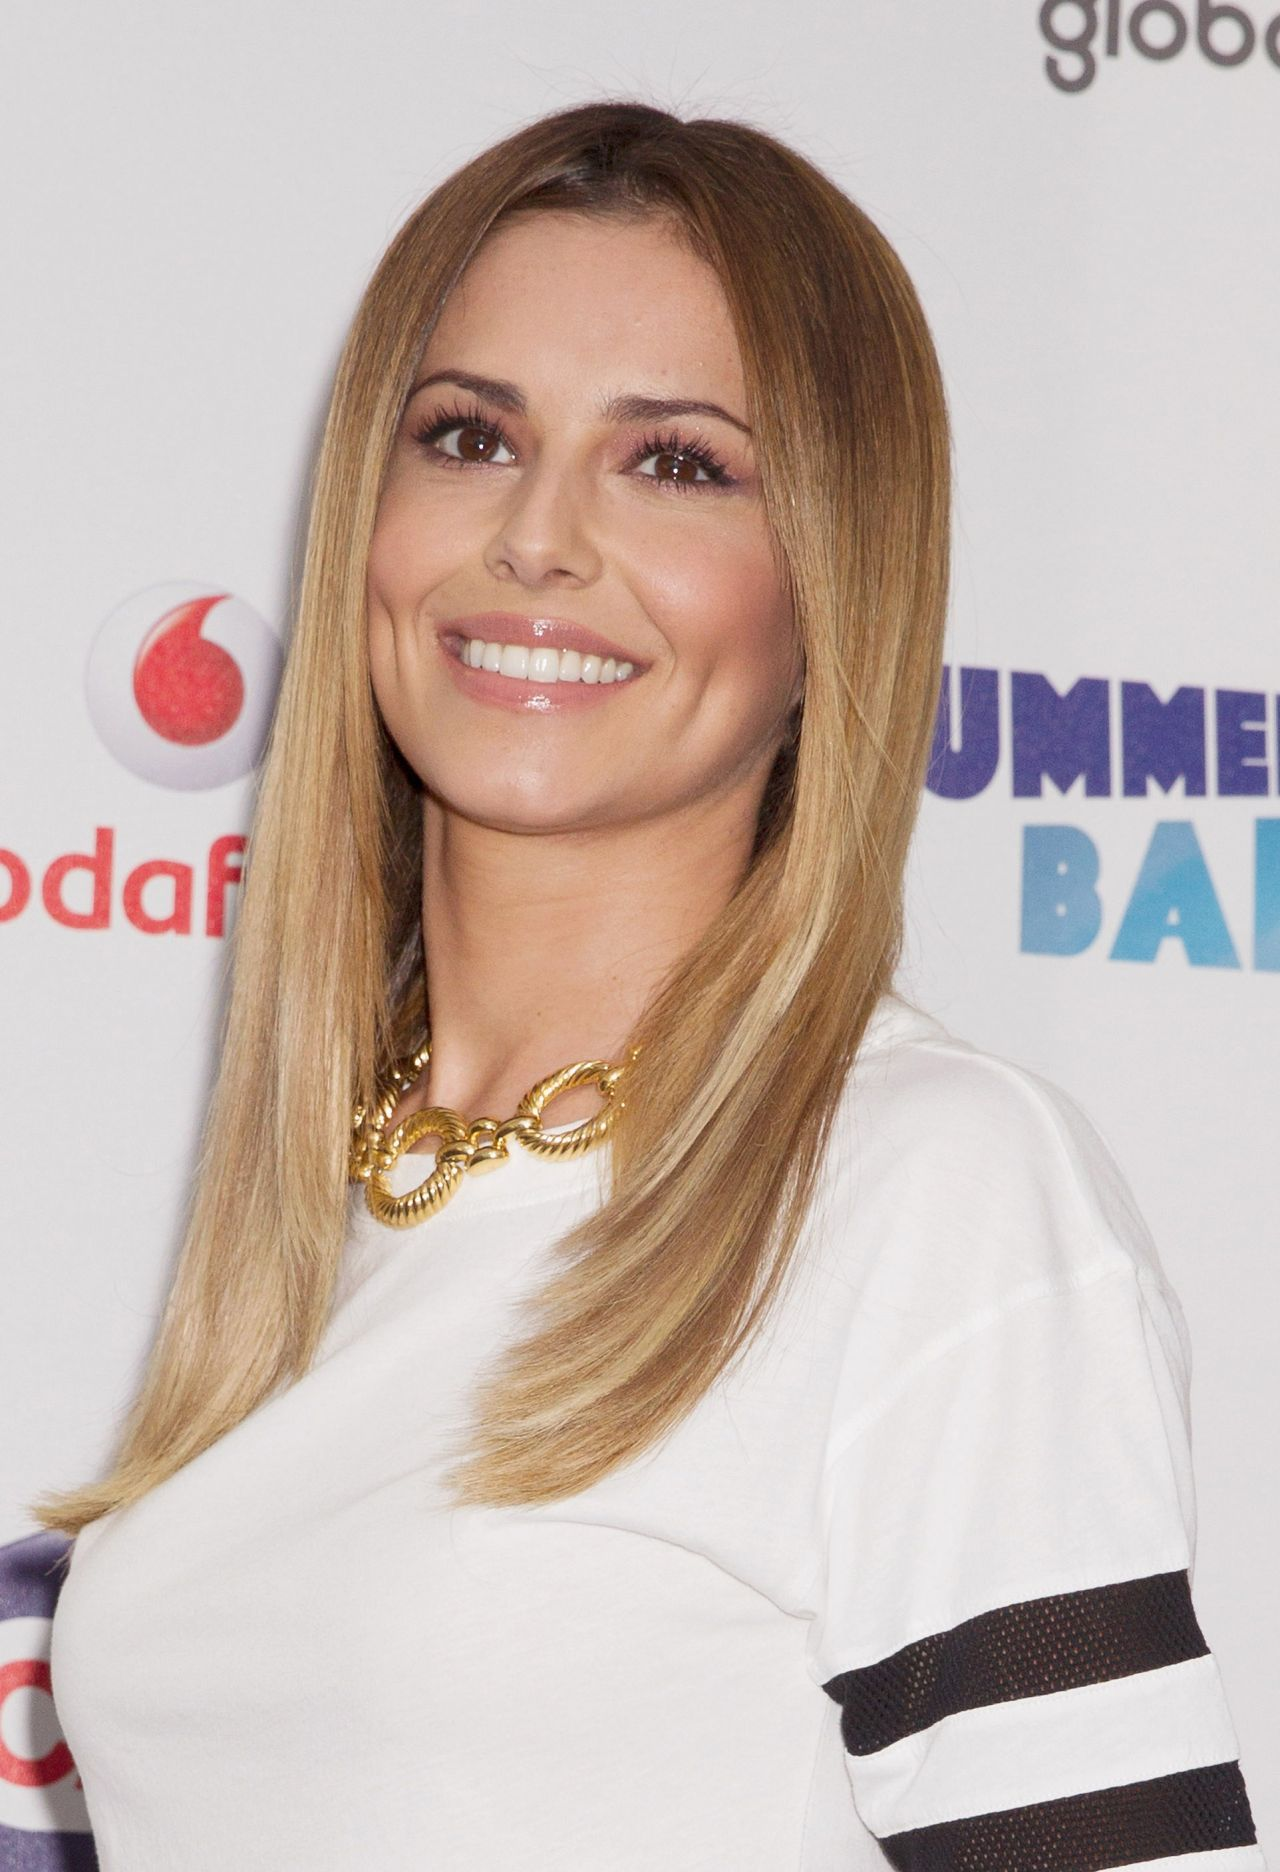 Cheryl Cole - Capital Summertime Ball at Wembley Stadium - June 2014